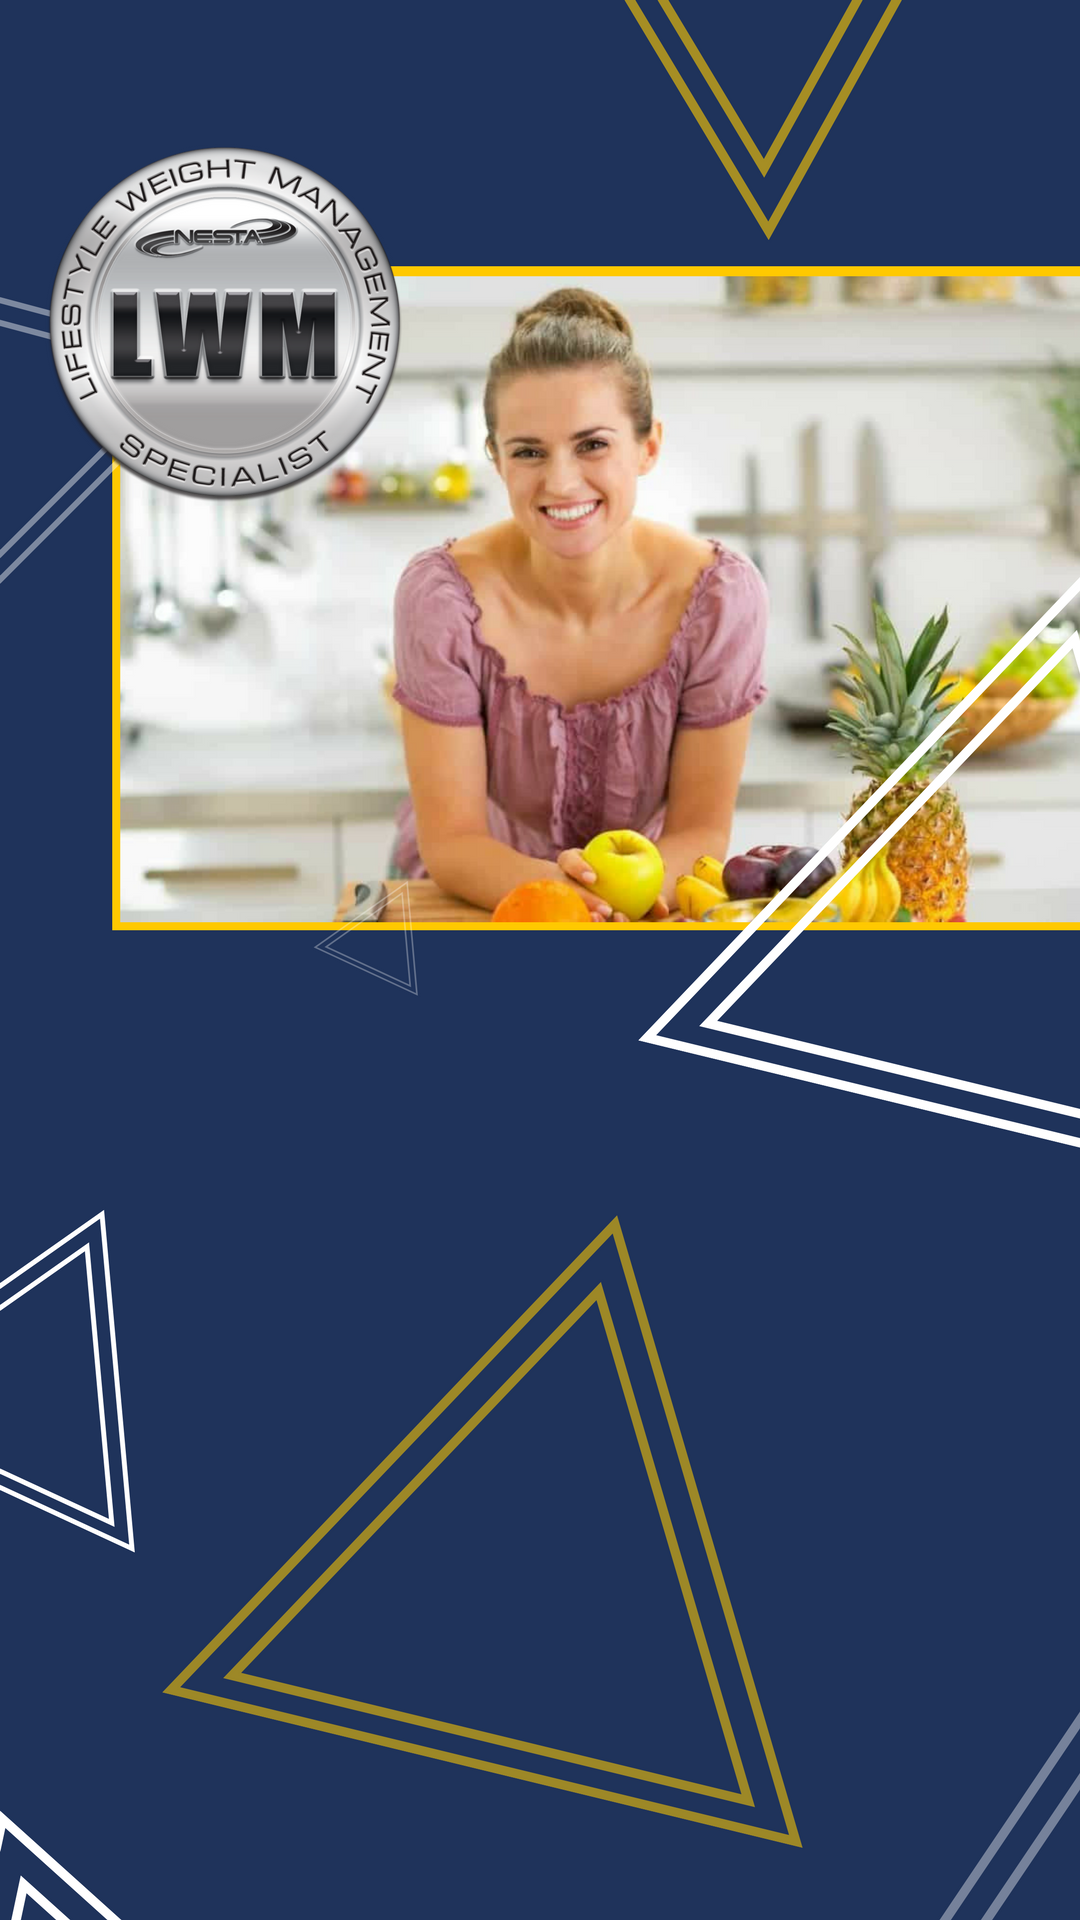 Lifestyle Weight Management Specialist Certification Health And